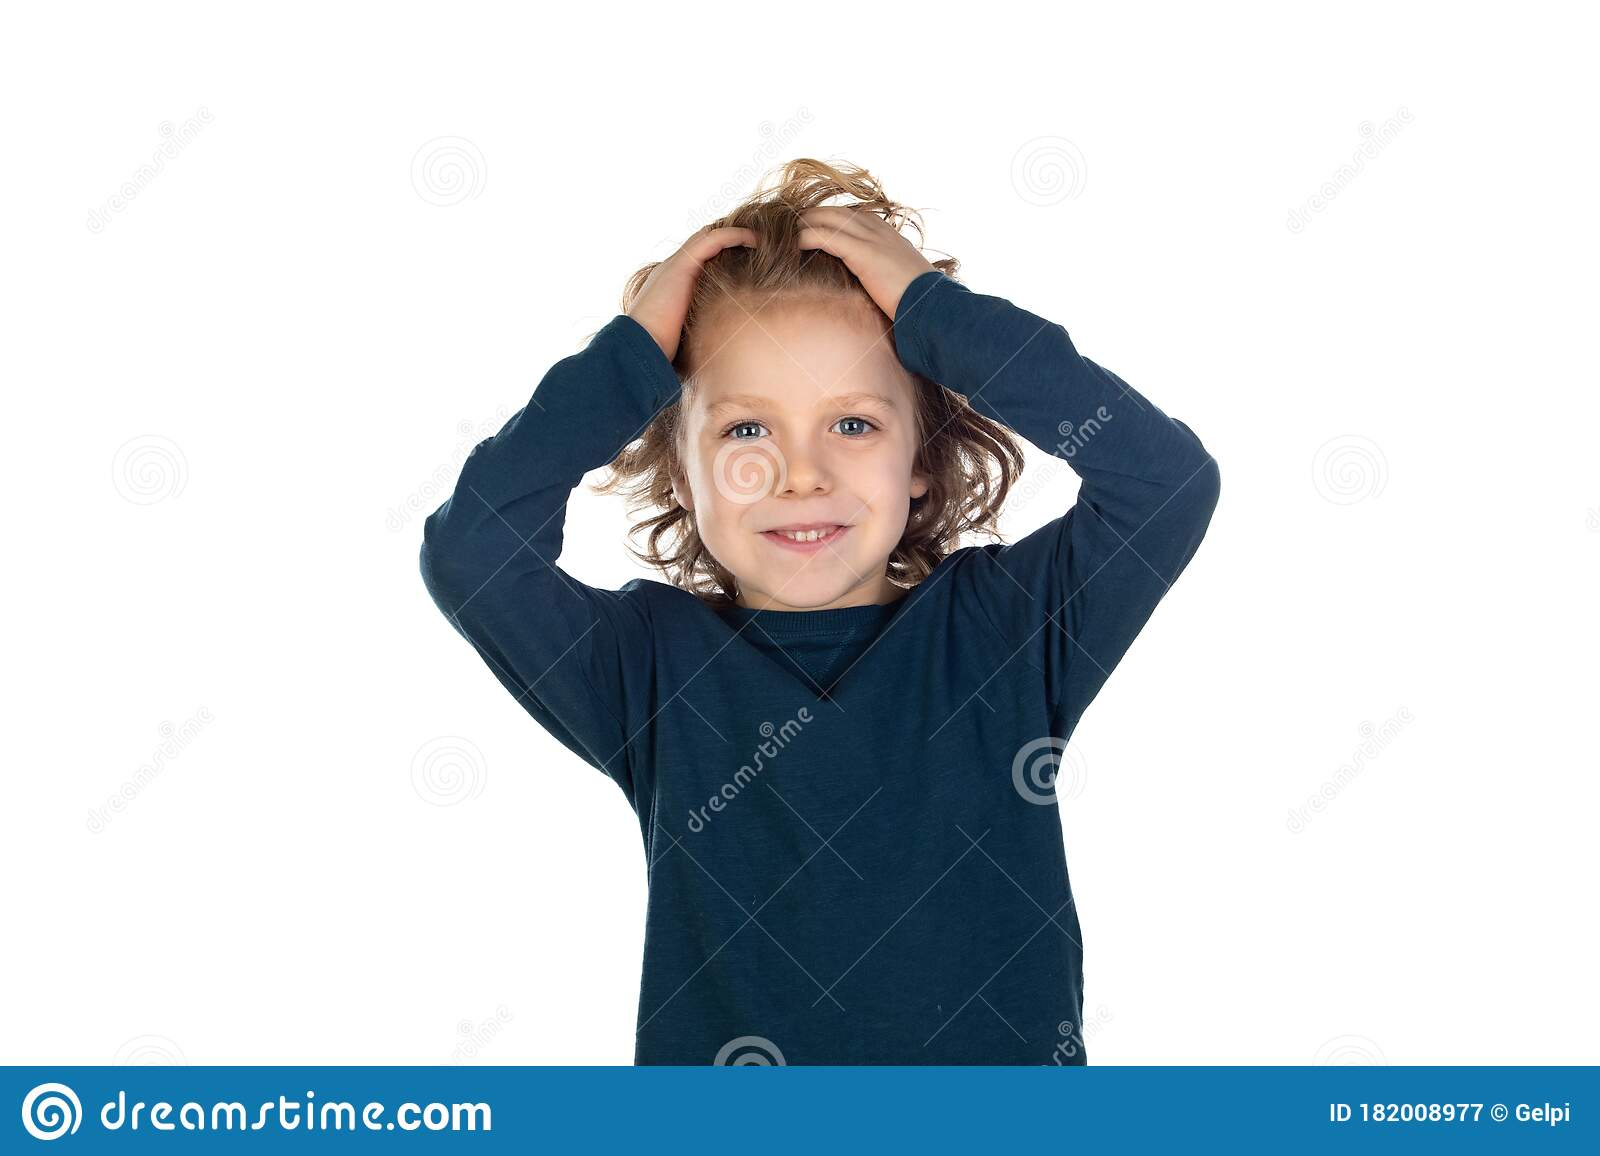 5 199 Little Boy Long Hair Photos Free Royalty Free Stock Photos From Dreamstime